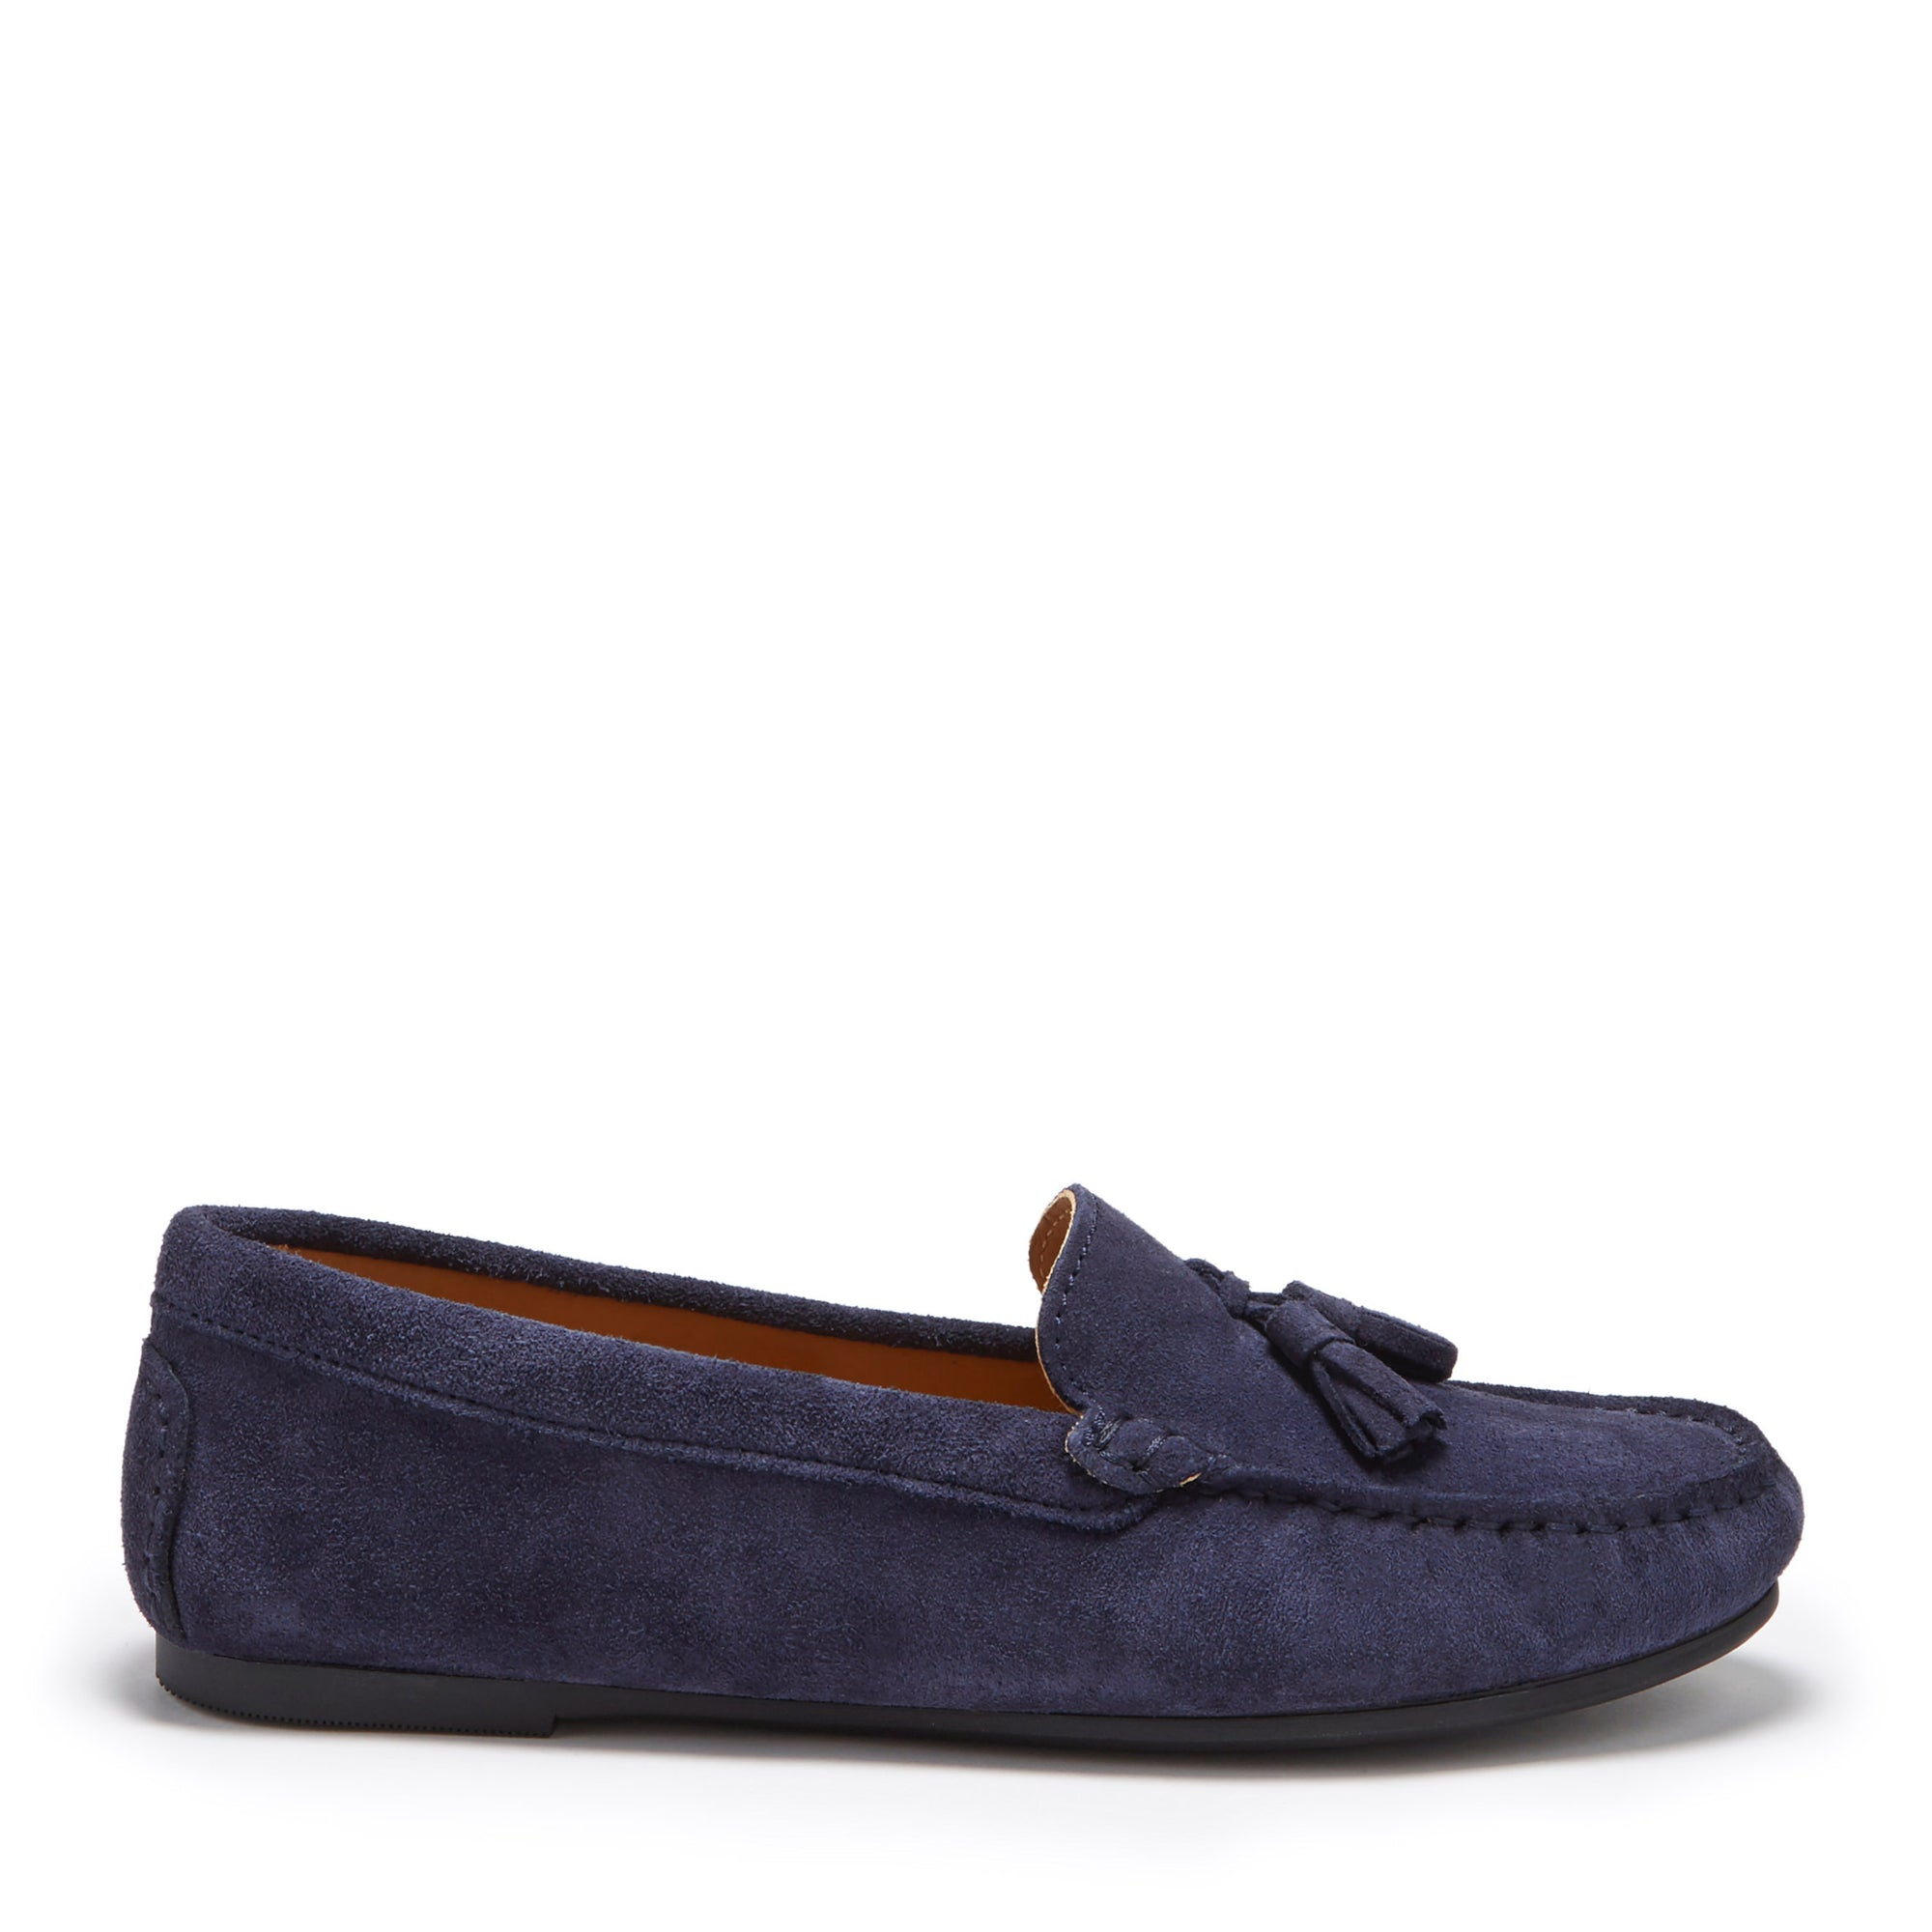 0f74026b3ce Recently Viewed. Women s Tasselled Driving Loafers Full Rubber Sole